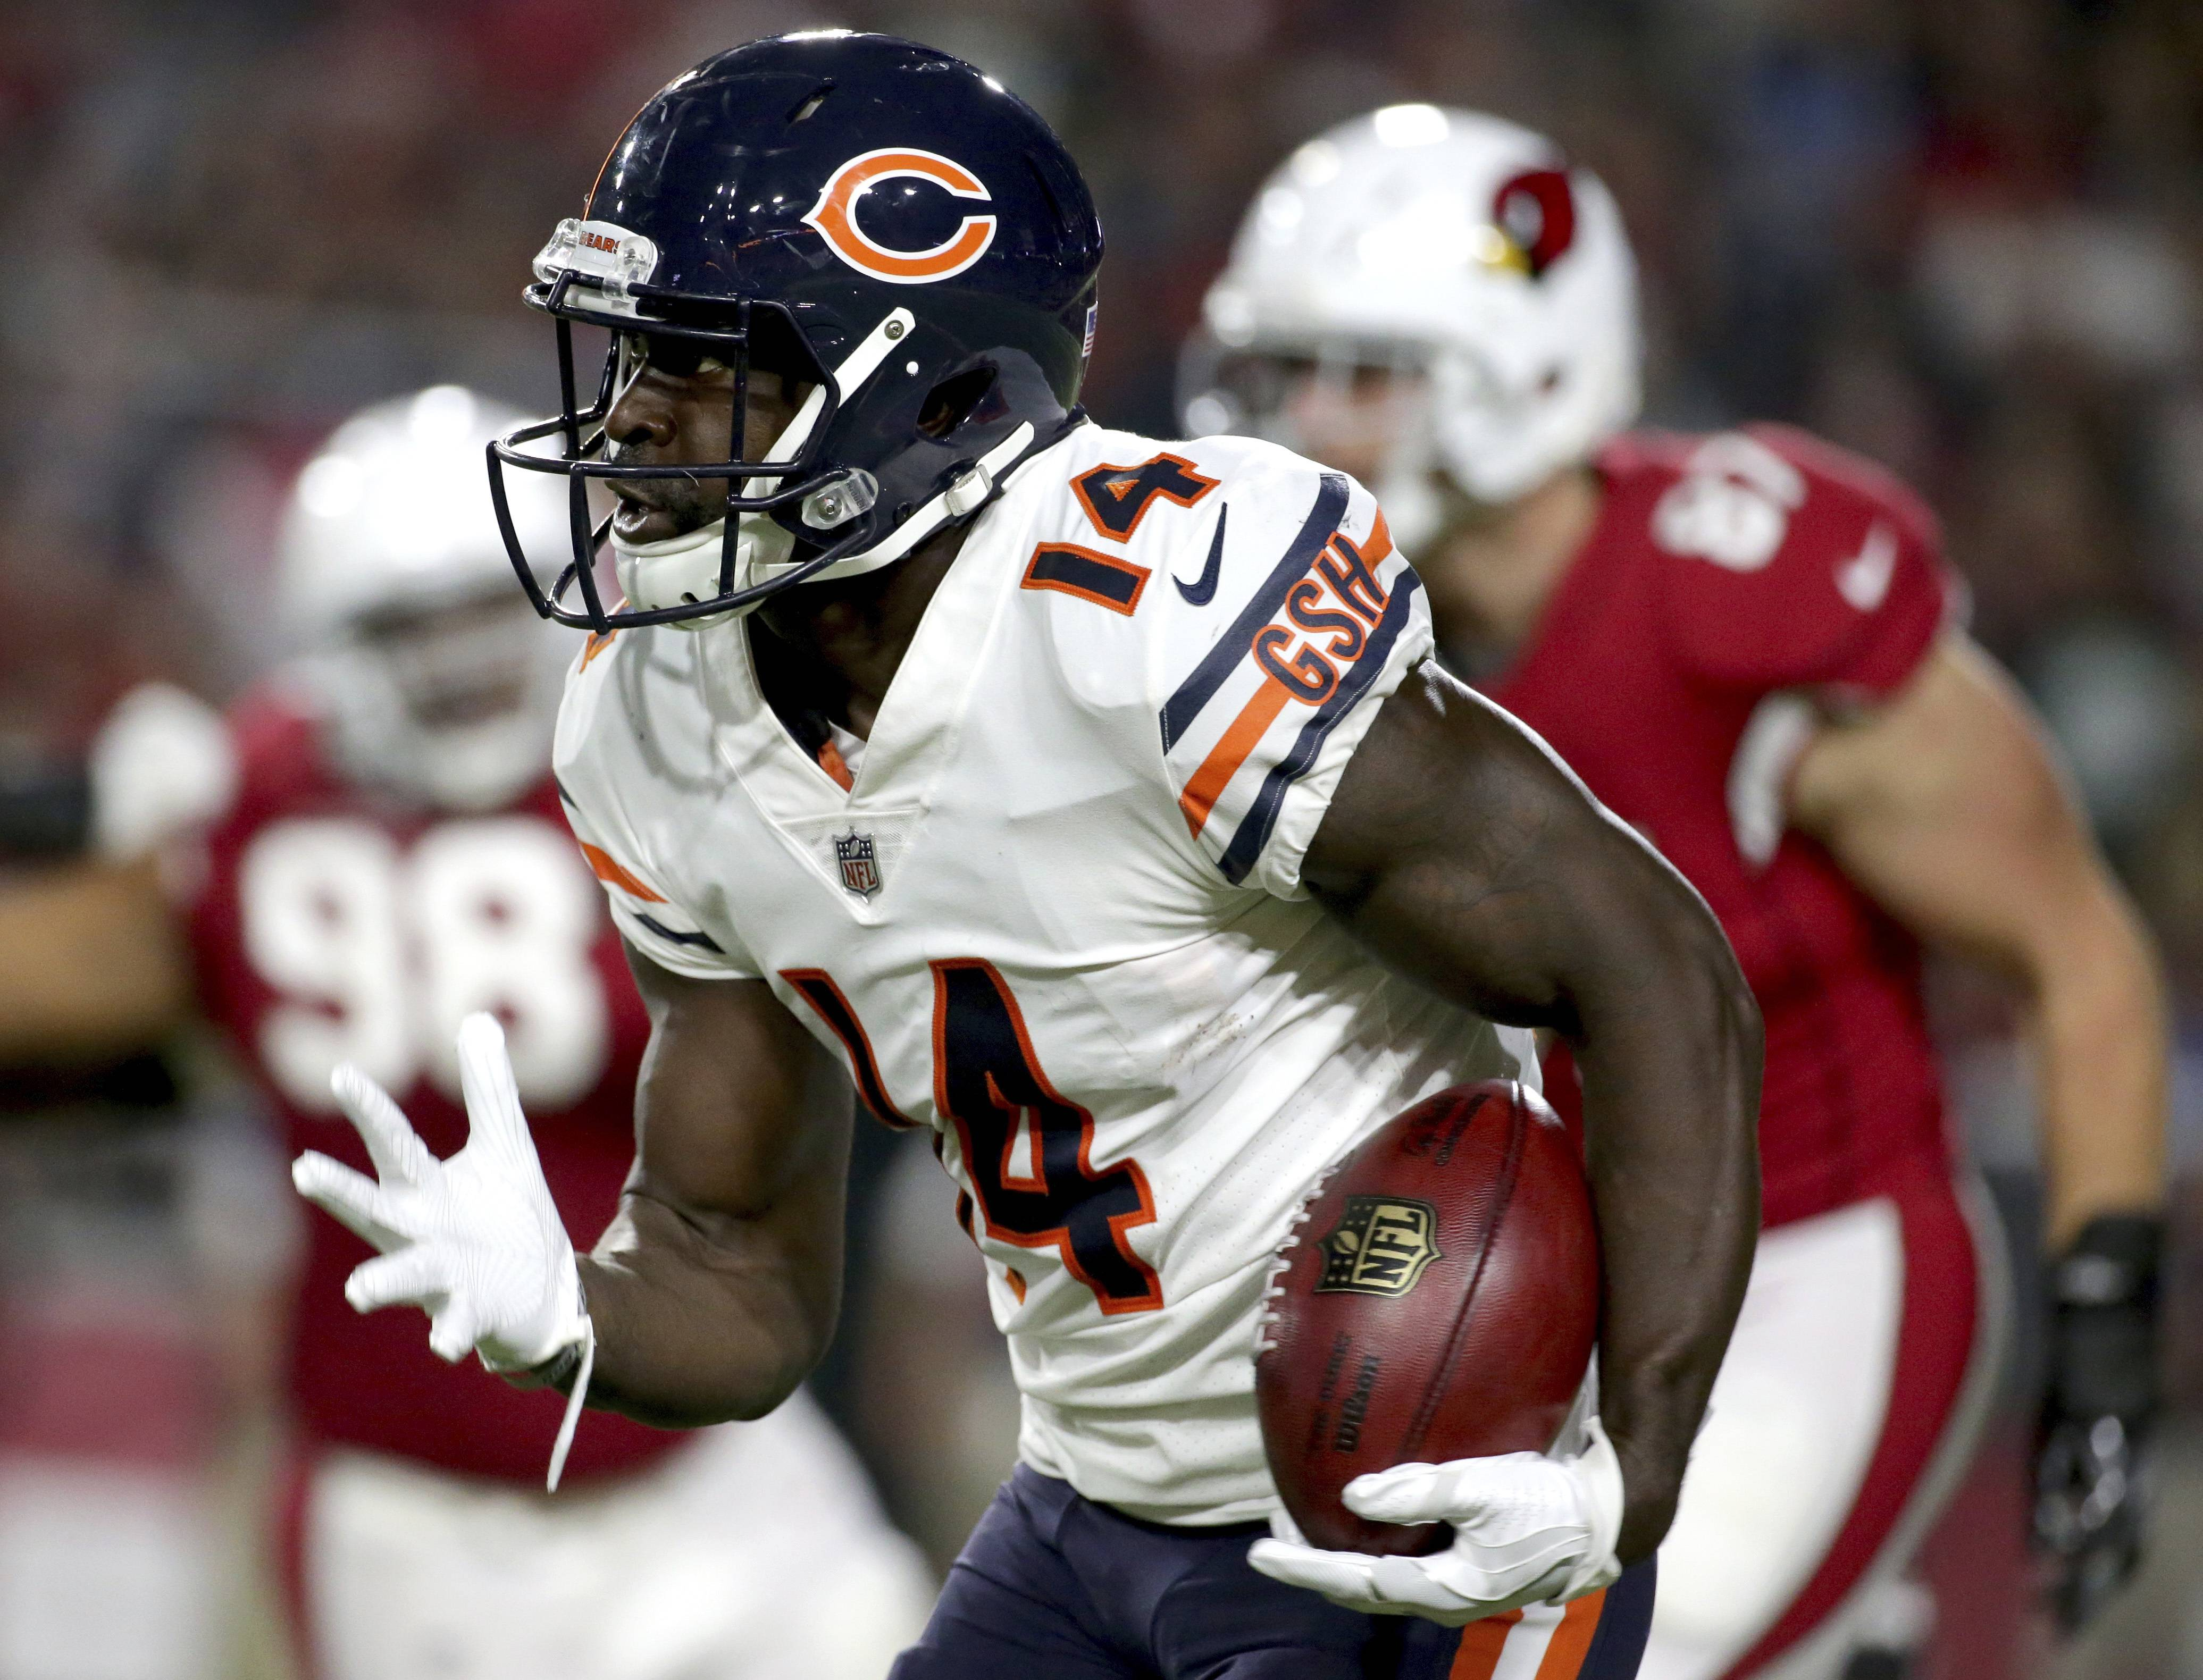 Chicago Bears wide receiver Deonte Thompson (14) runs back a missed field goal attempt for a touchdown against the Arizona Cardinals during the first half of a preseason NFL football game, Saturday, Aug. 19, 2017, in Glendale, Ariz. (AP Photo/Ralph Freso)